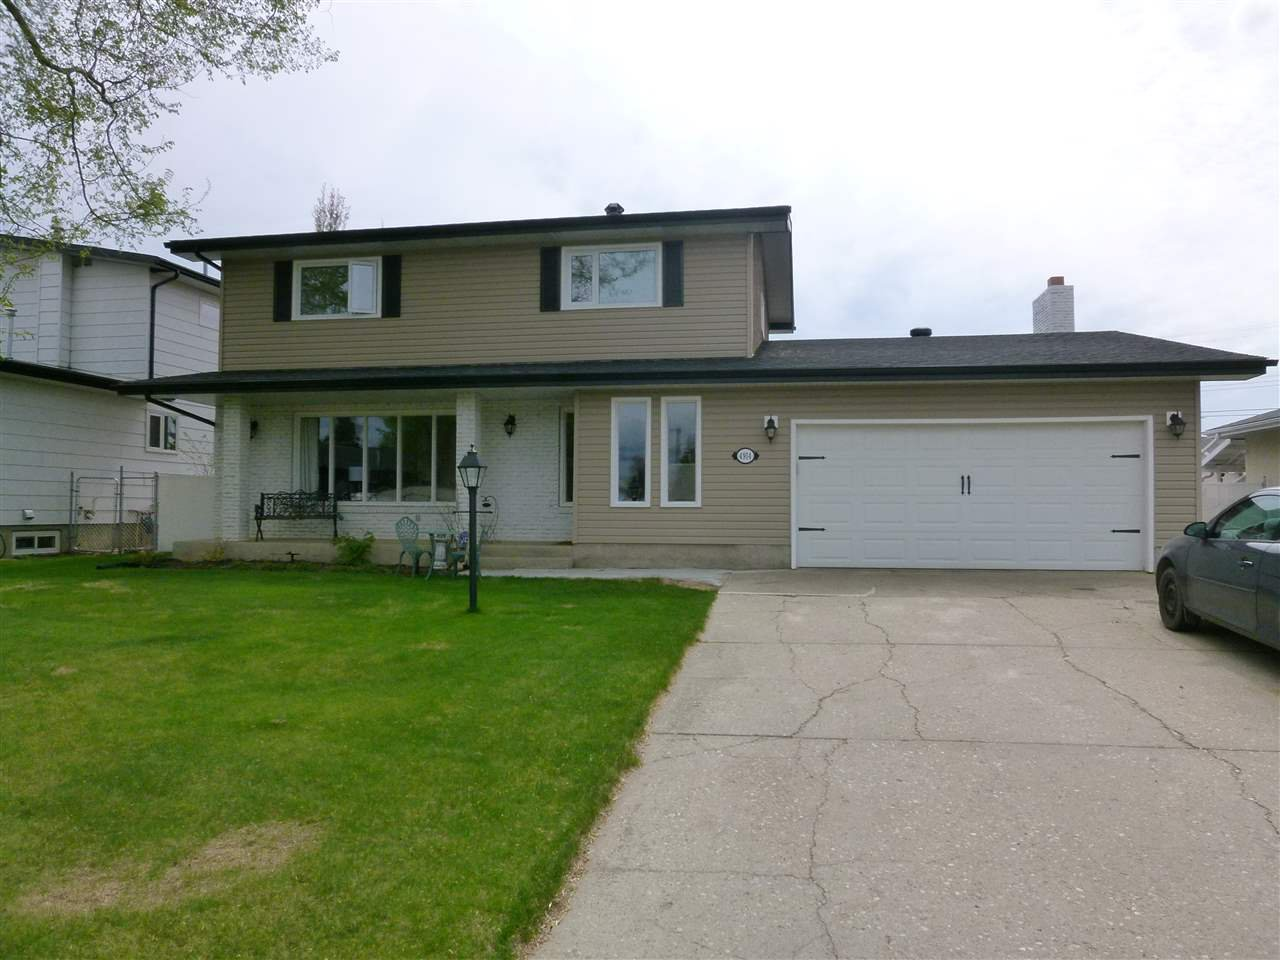 Main Photo: 4914 56 Avenue: Stony Plain House for sale : MLS®# E4197843